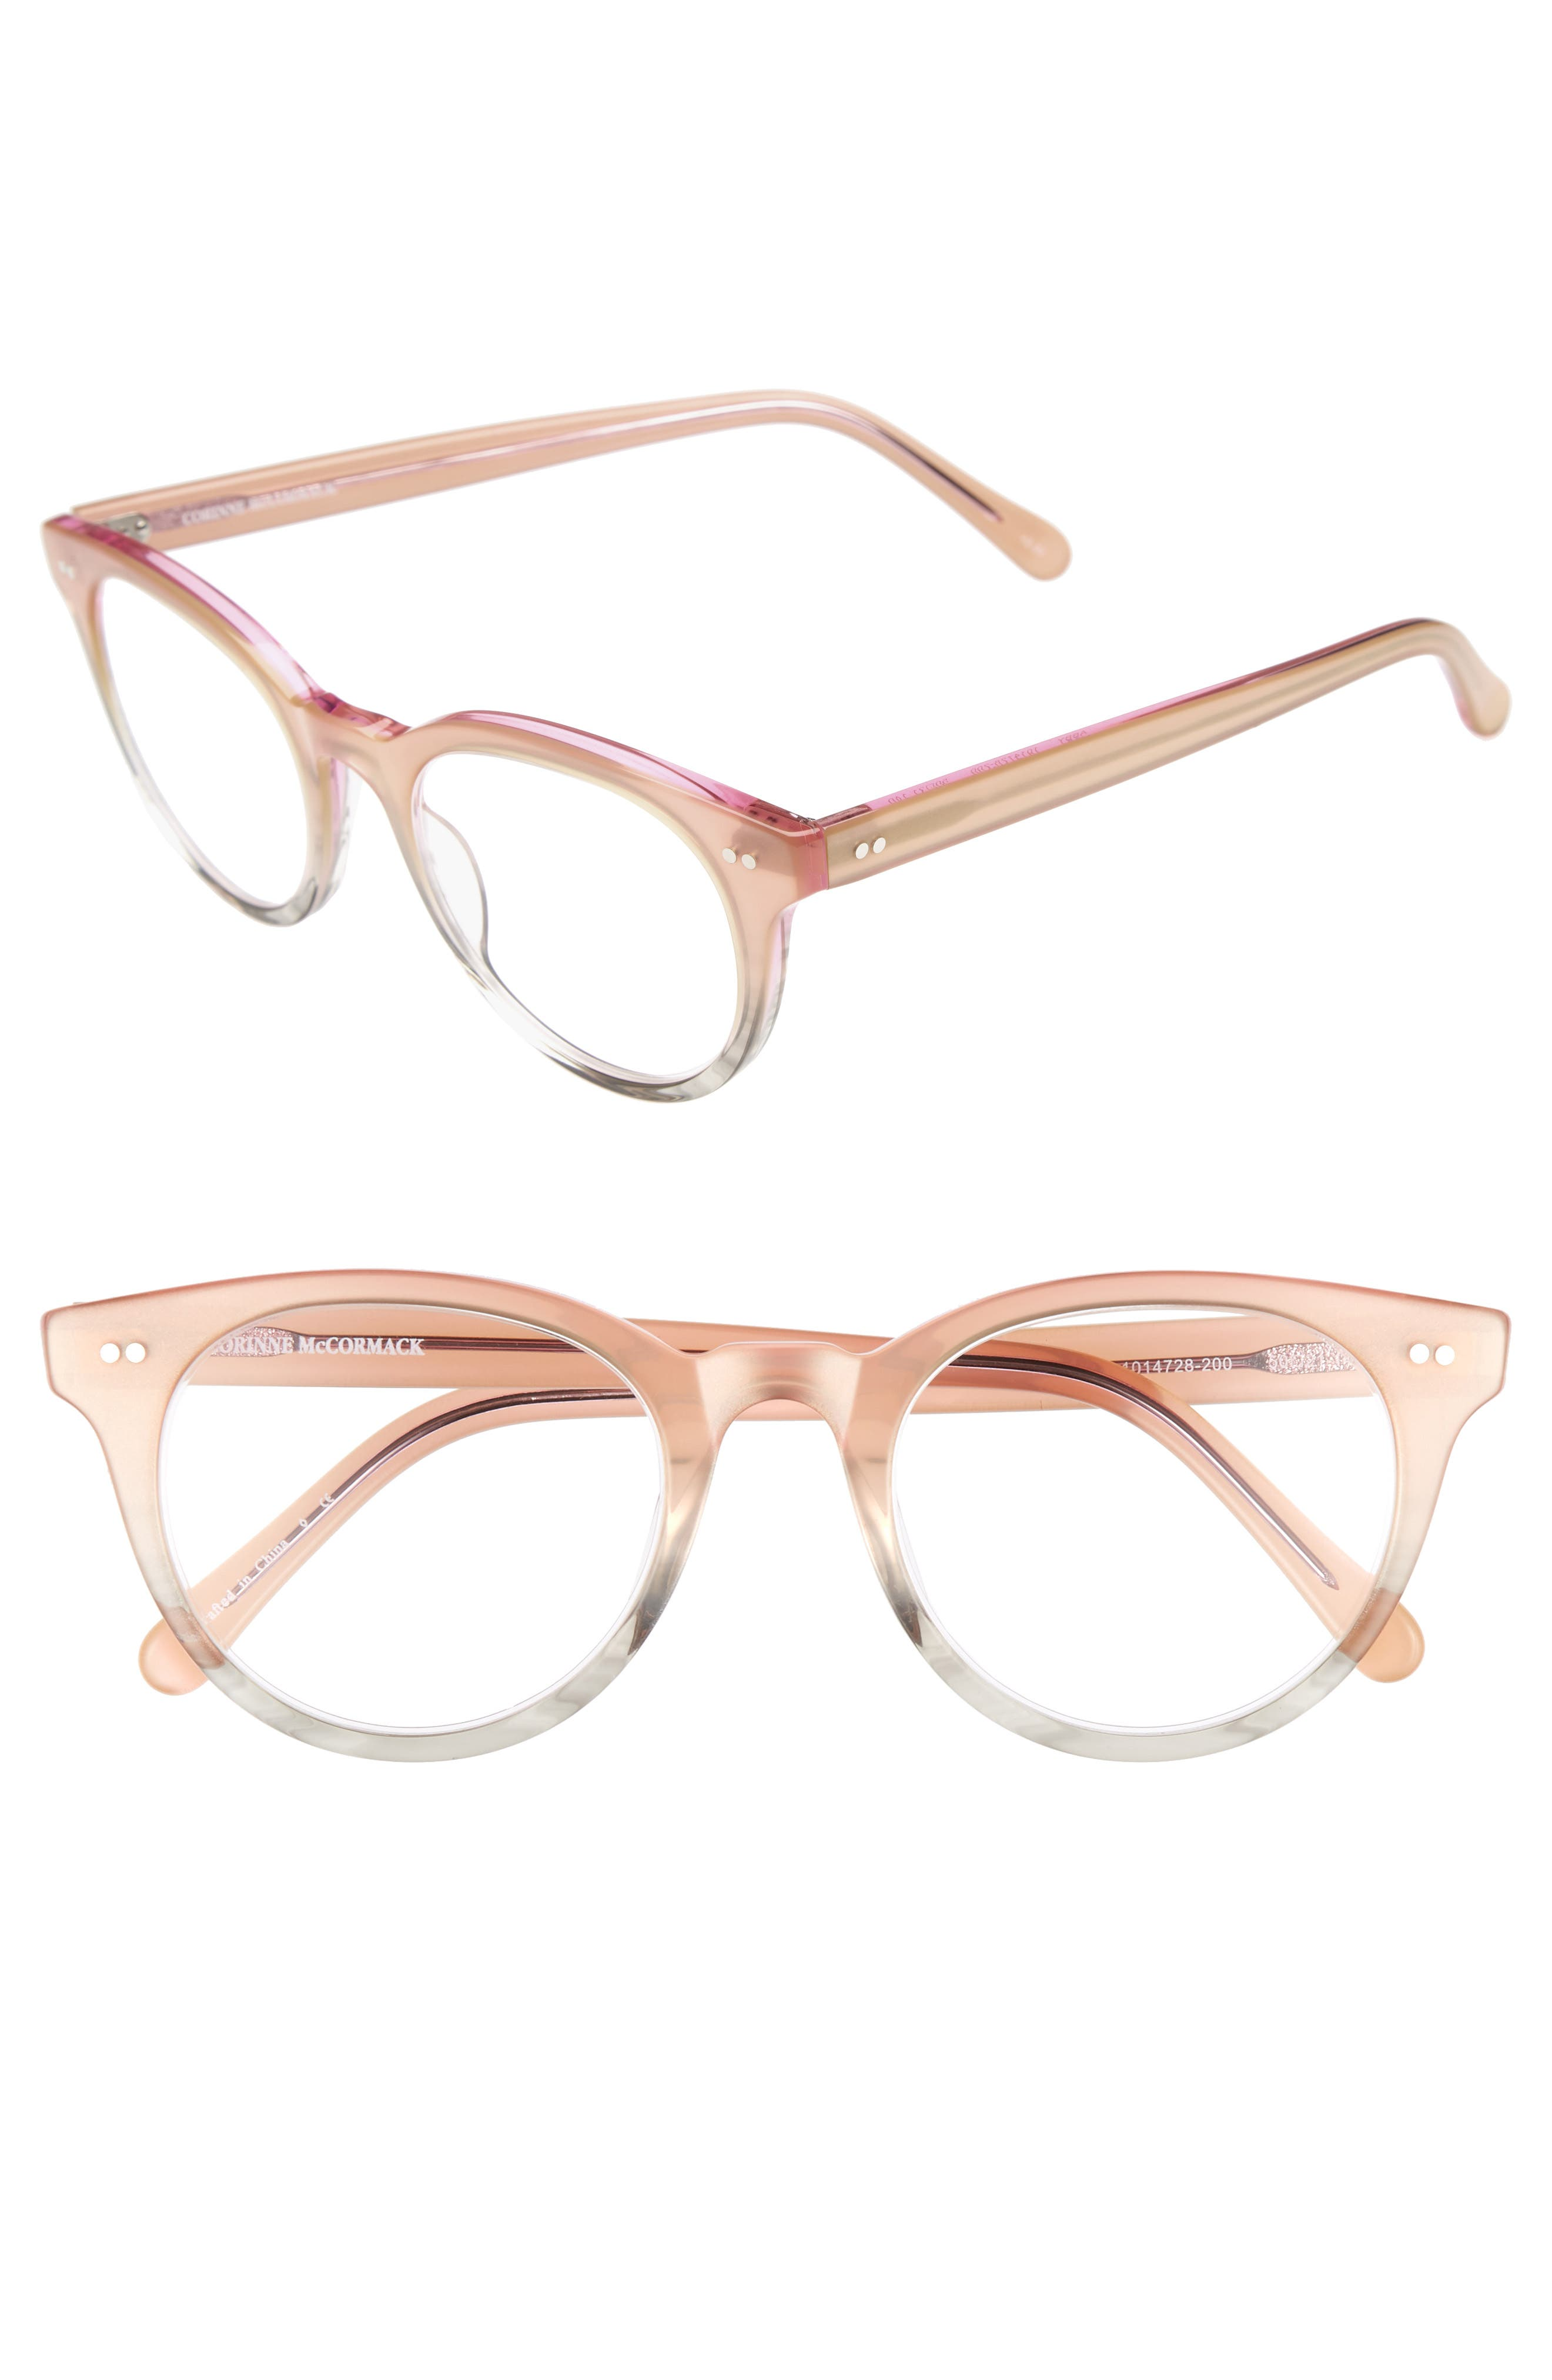 Corinne McCormack Abby 50mm Reading Glasses